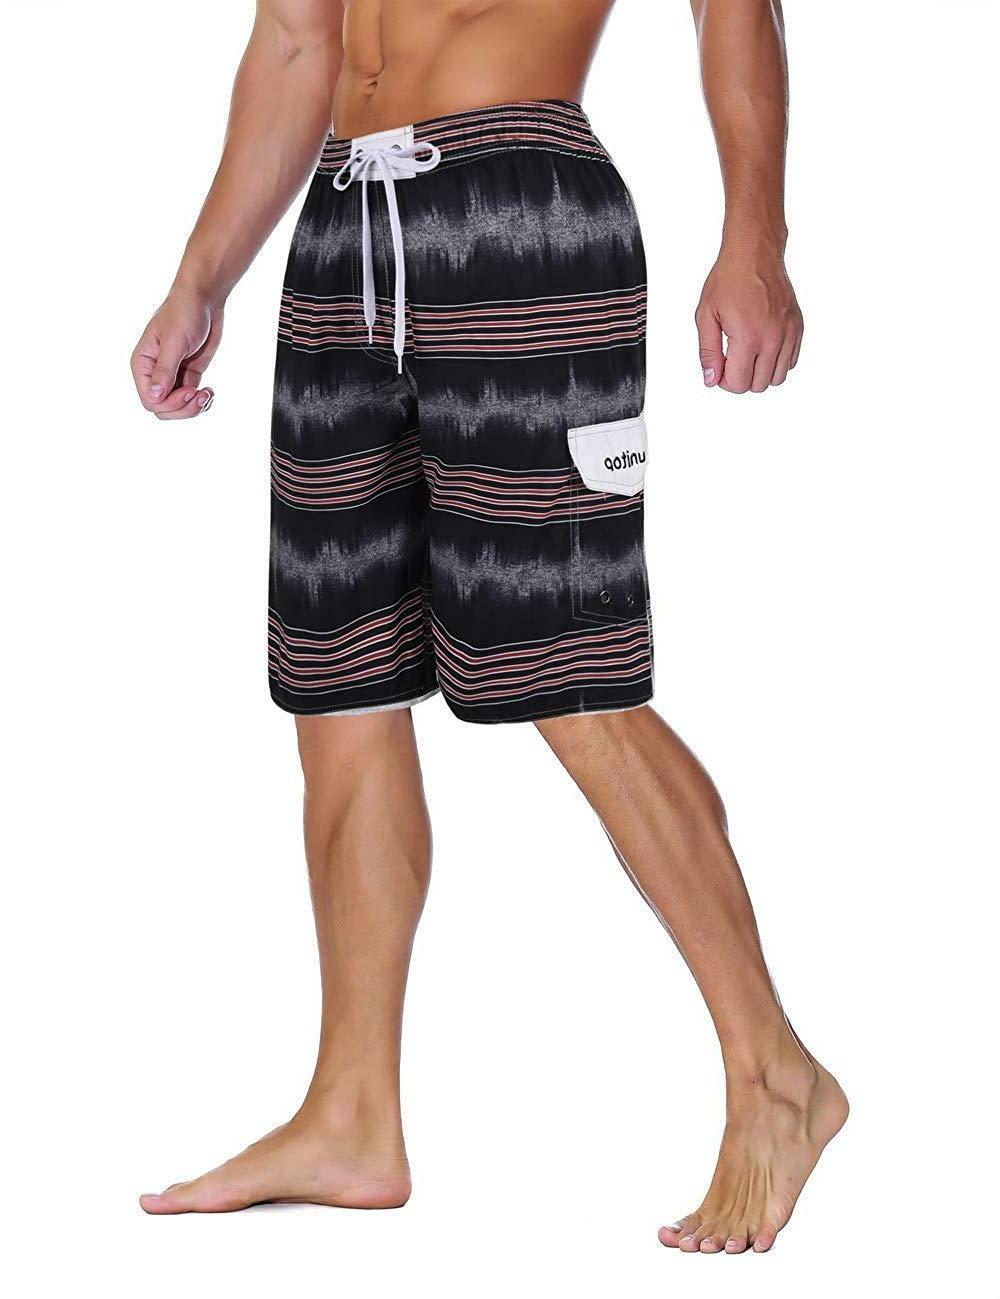 Unitop Swim Trunks Beach Shorts with Lining